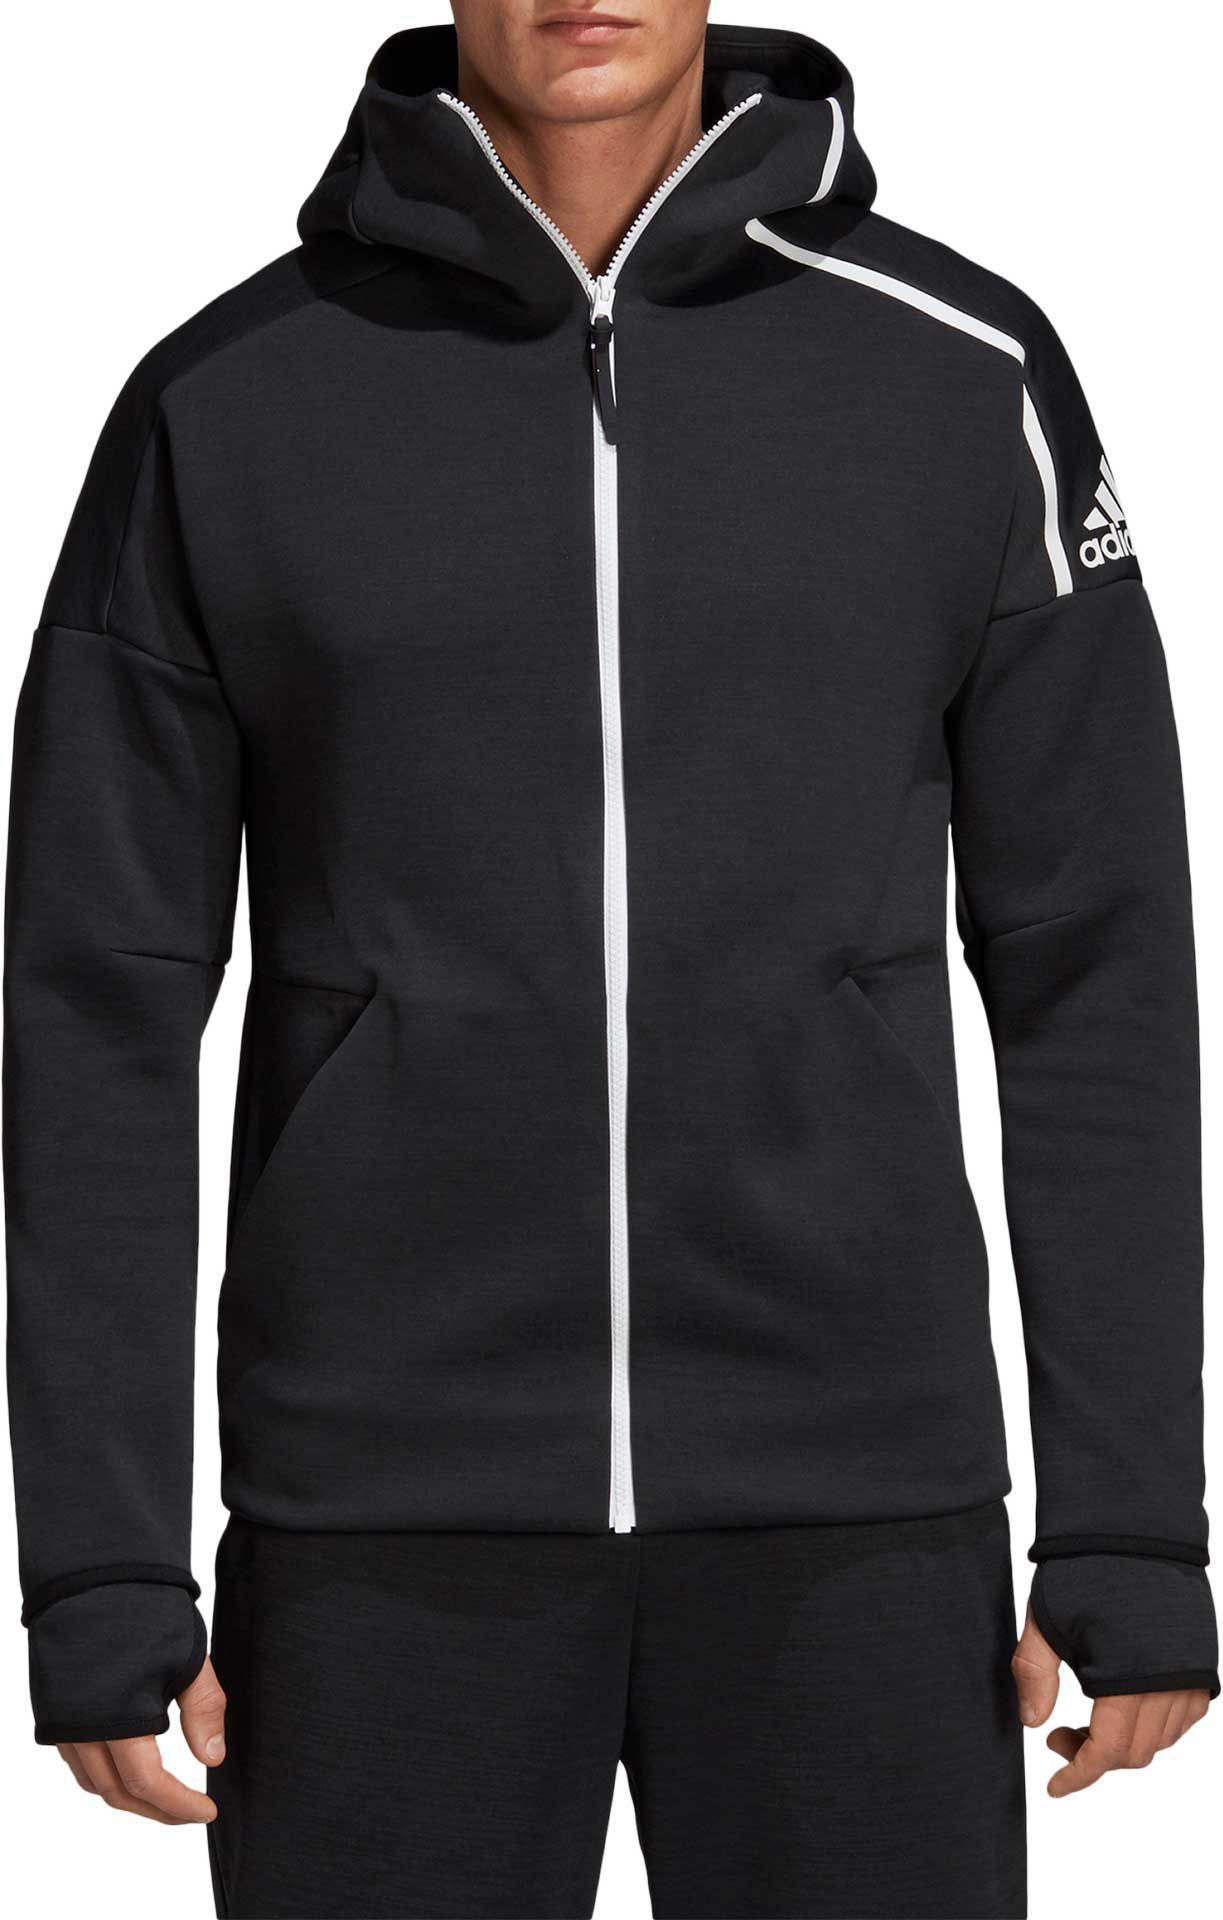 new arrival bc626 7716f adidas Men s ZNE Full Zip Hoodie, Size  Medium, Black